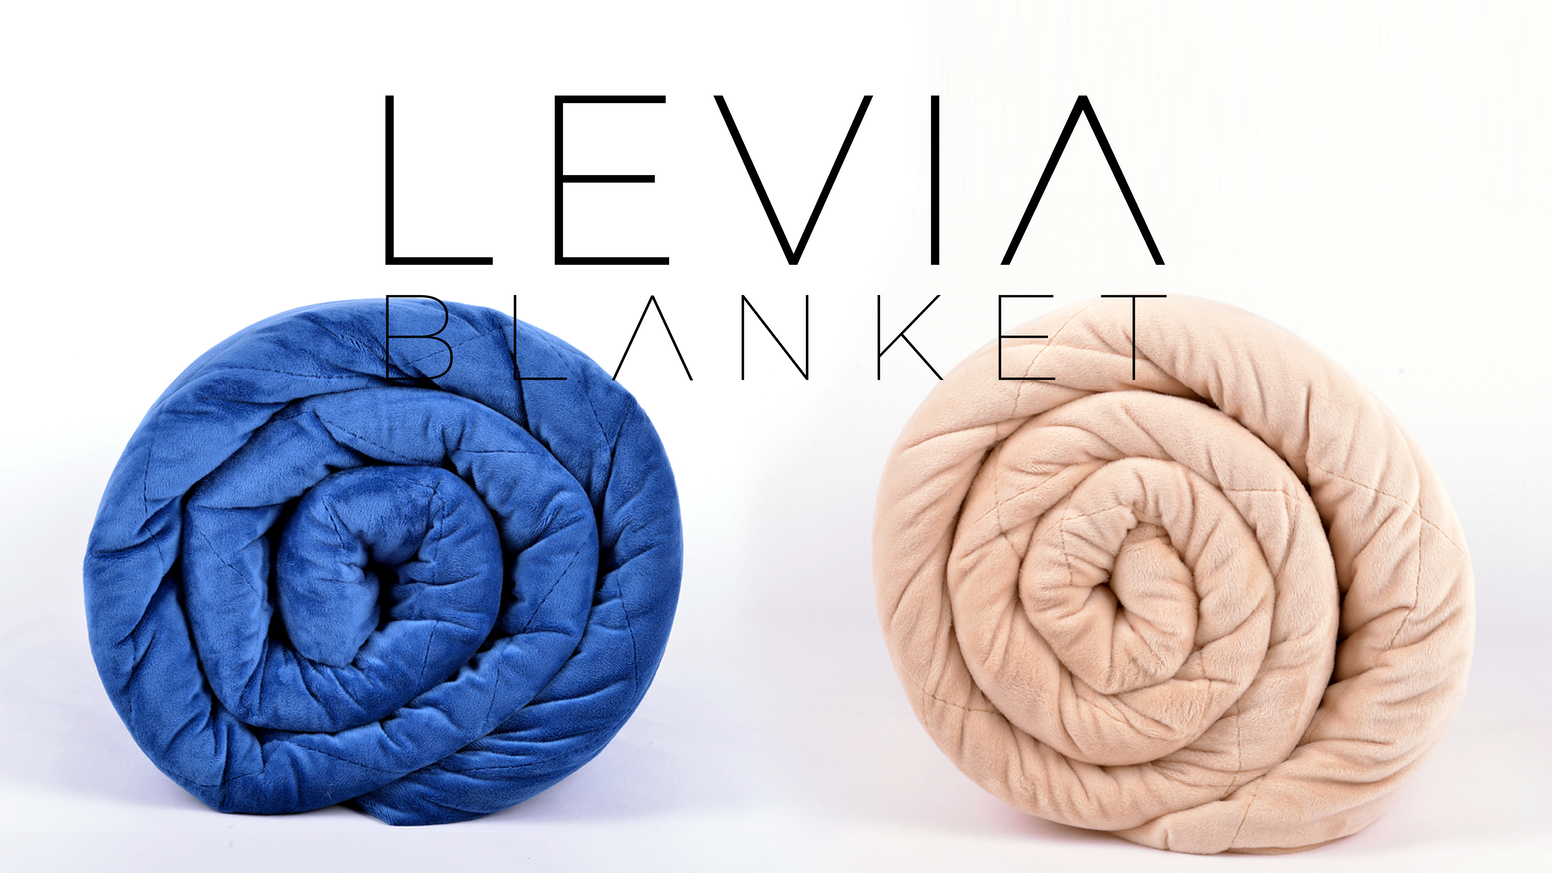 A luxurious weighted blanket designed to improve sleep, increase relaxation and promote overall well-being. Visit our official online store: www.leviablanket.com